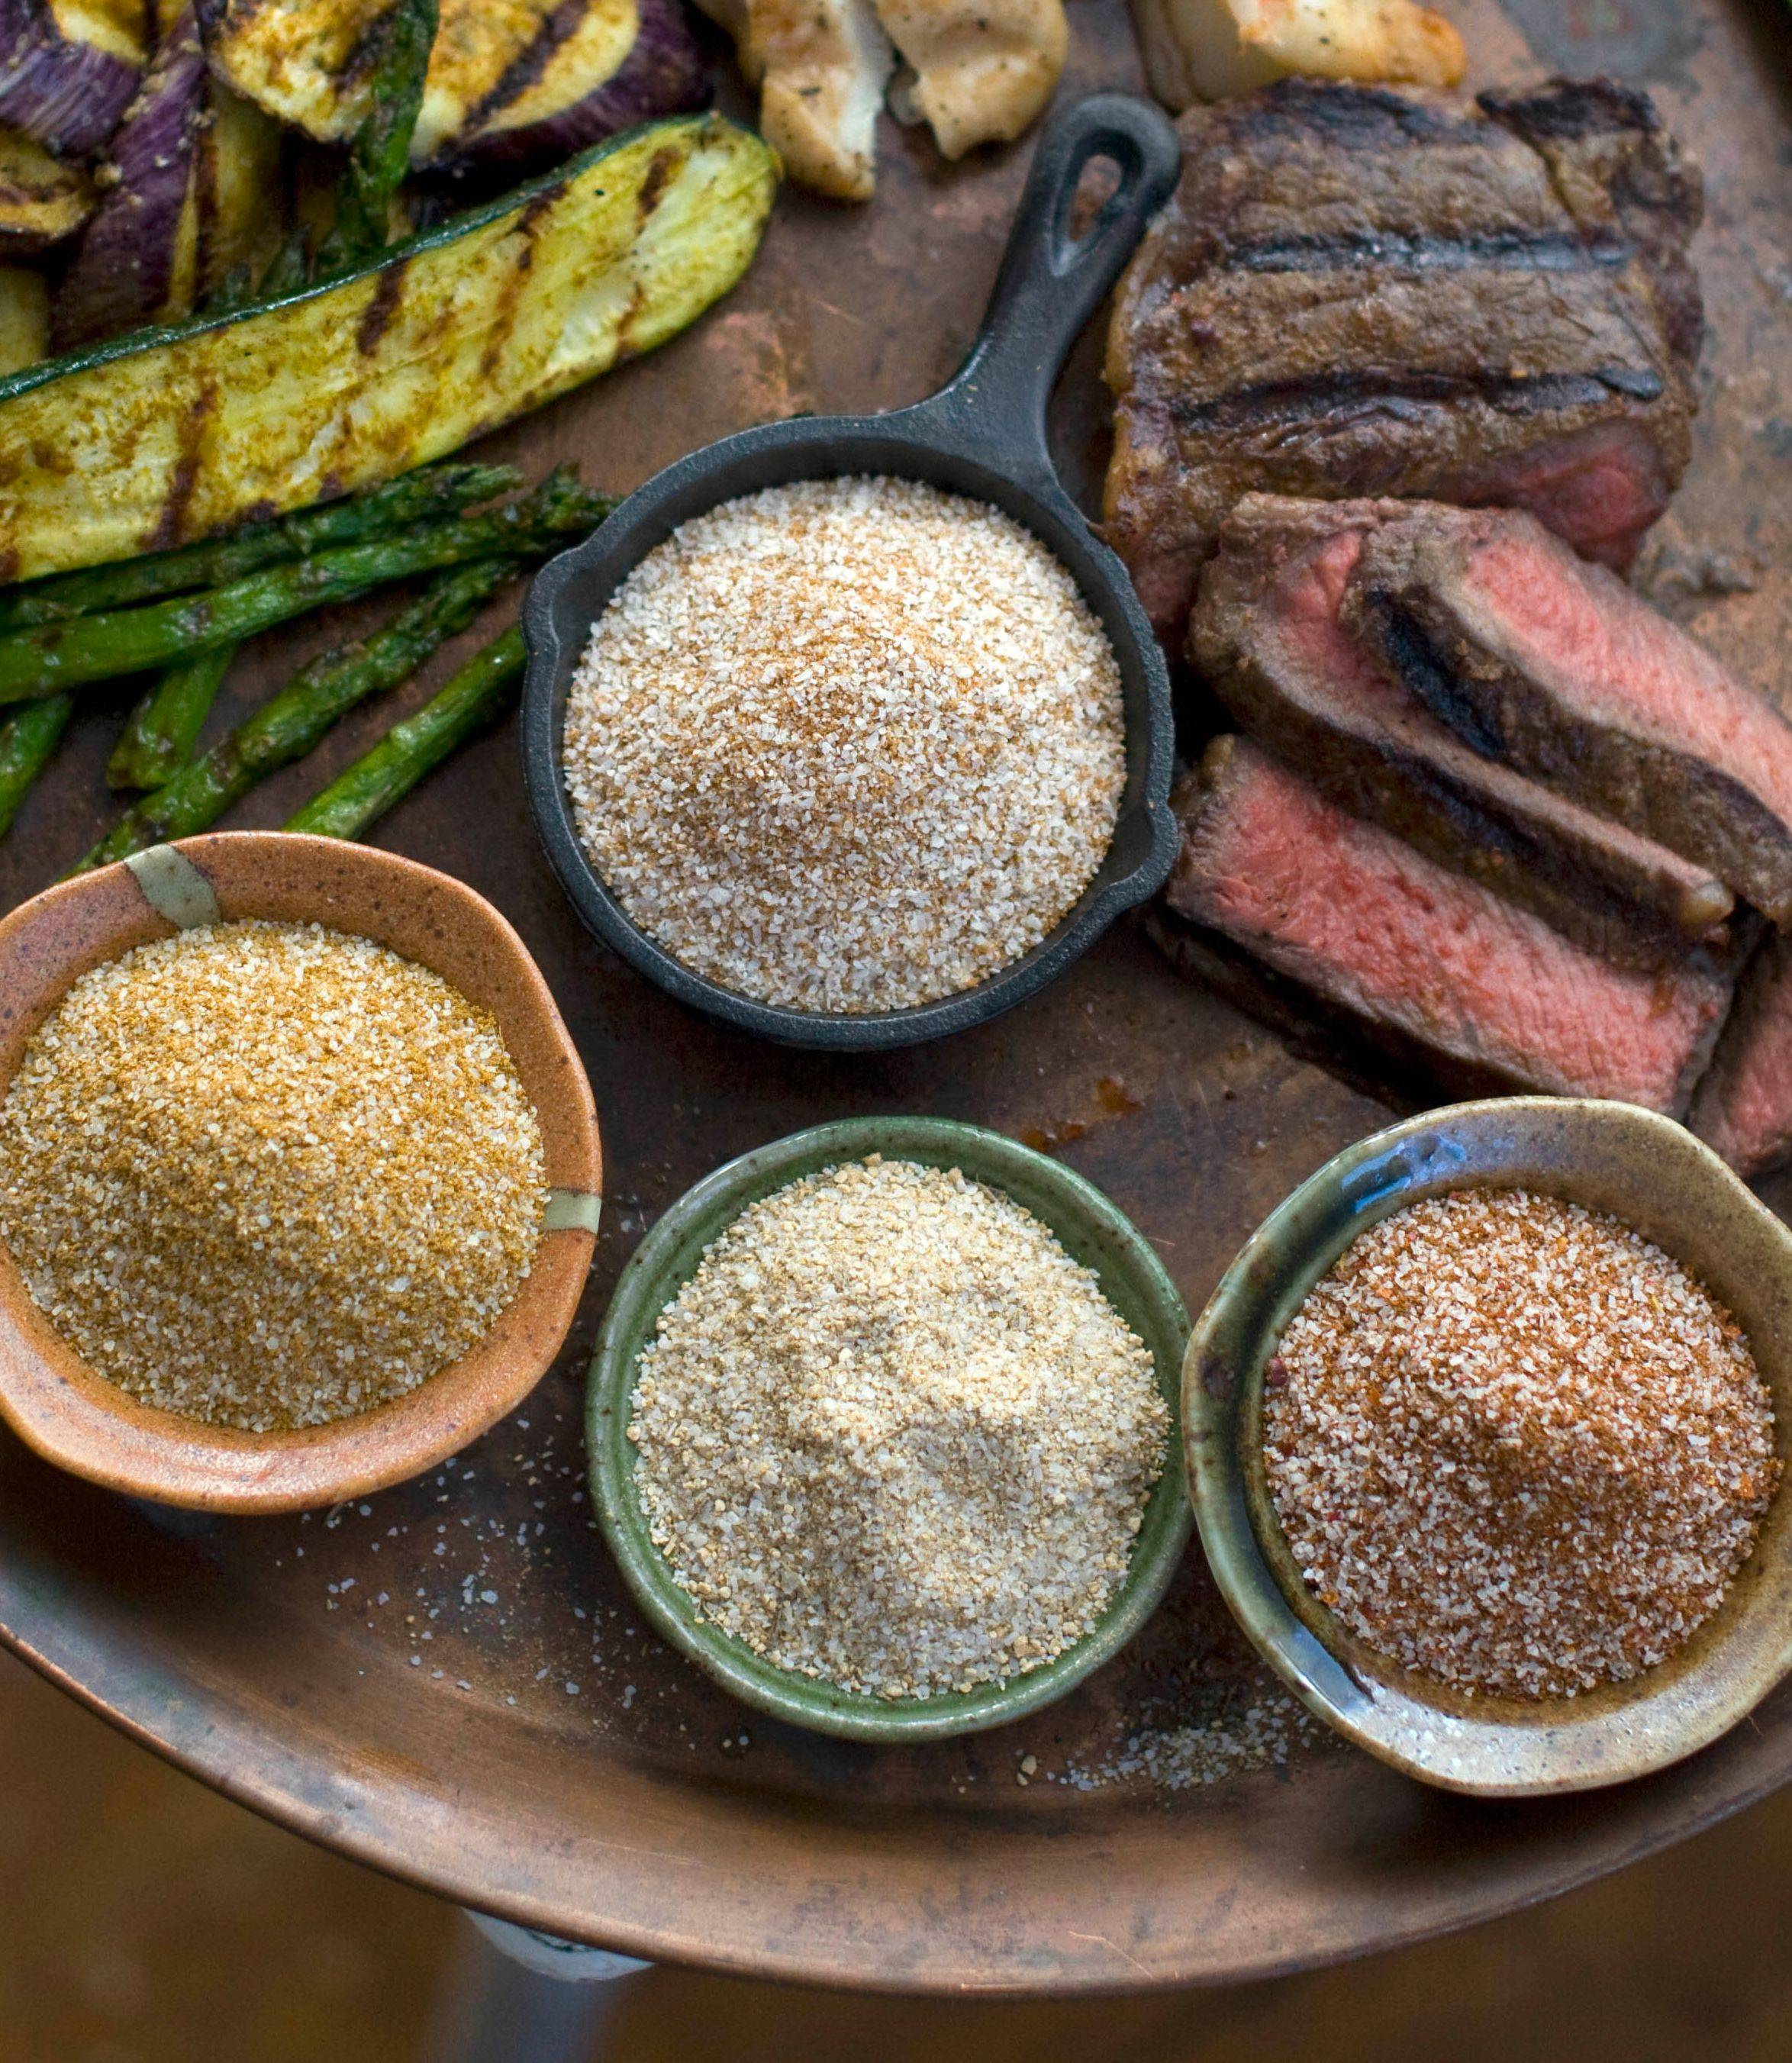 Spice rubs quick, easy way to infuse flavor